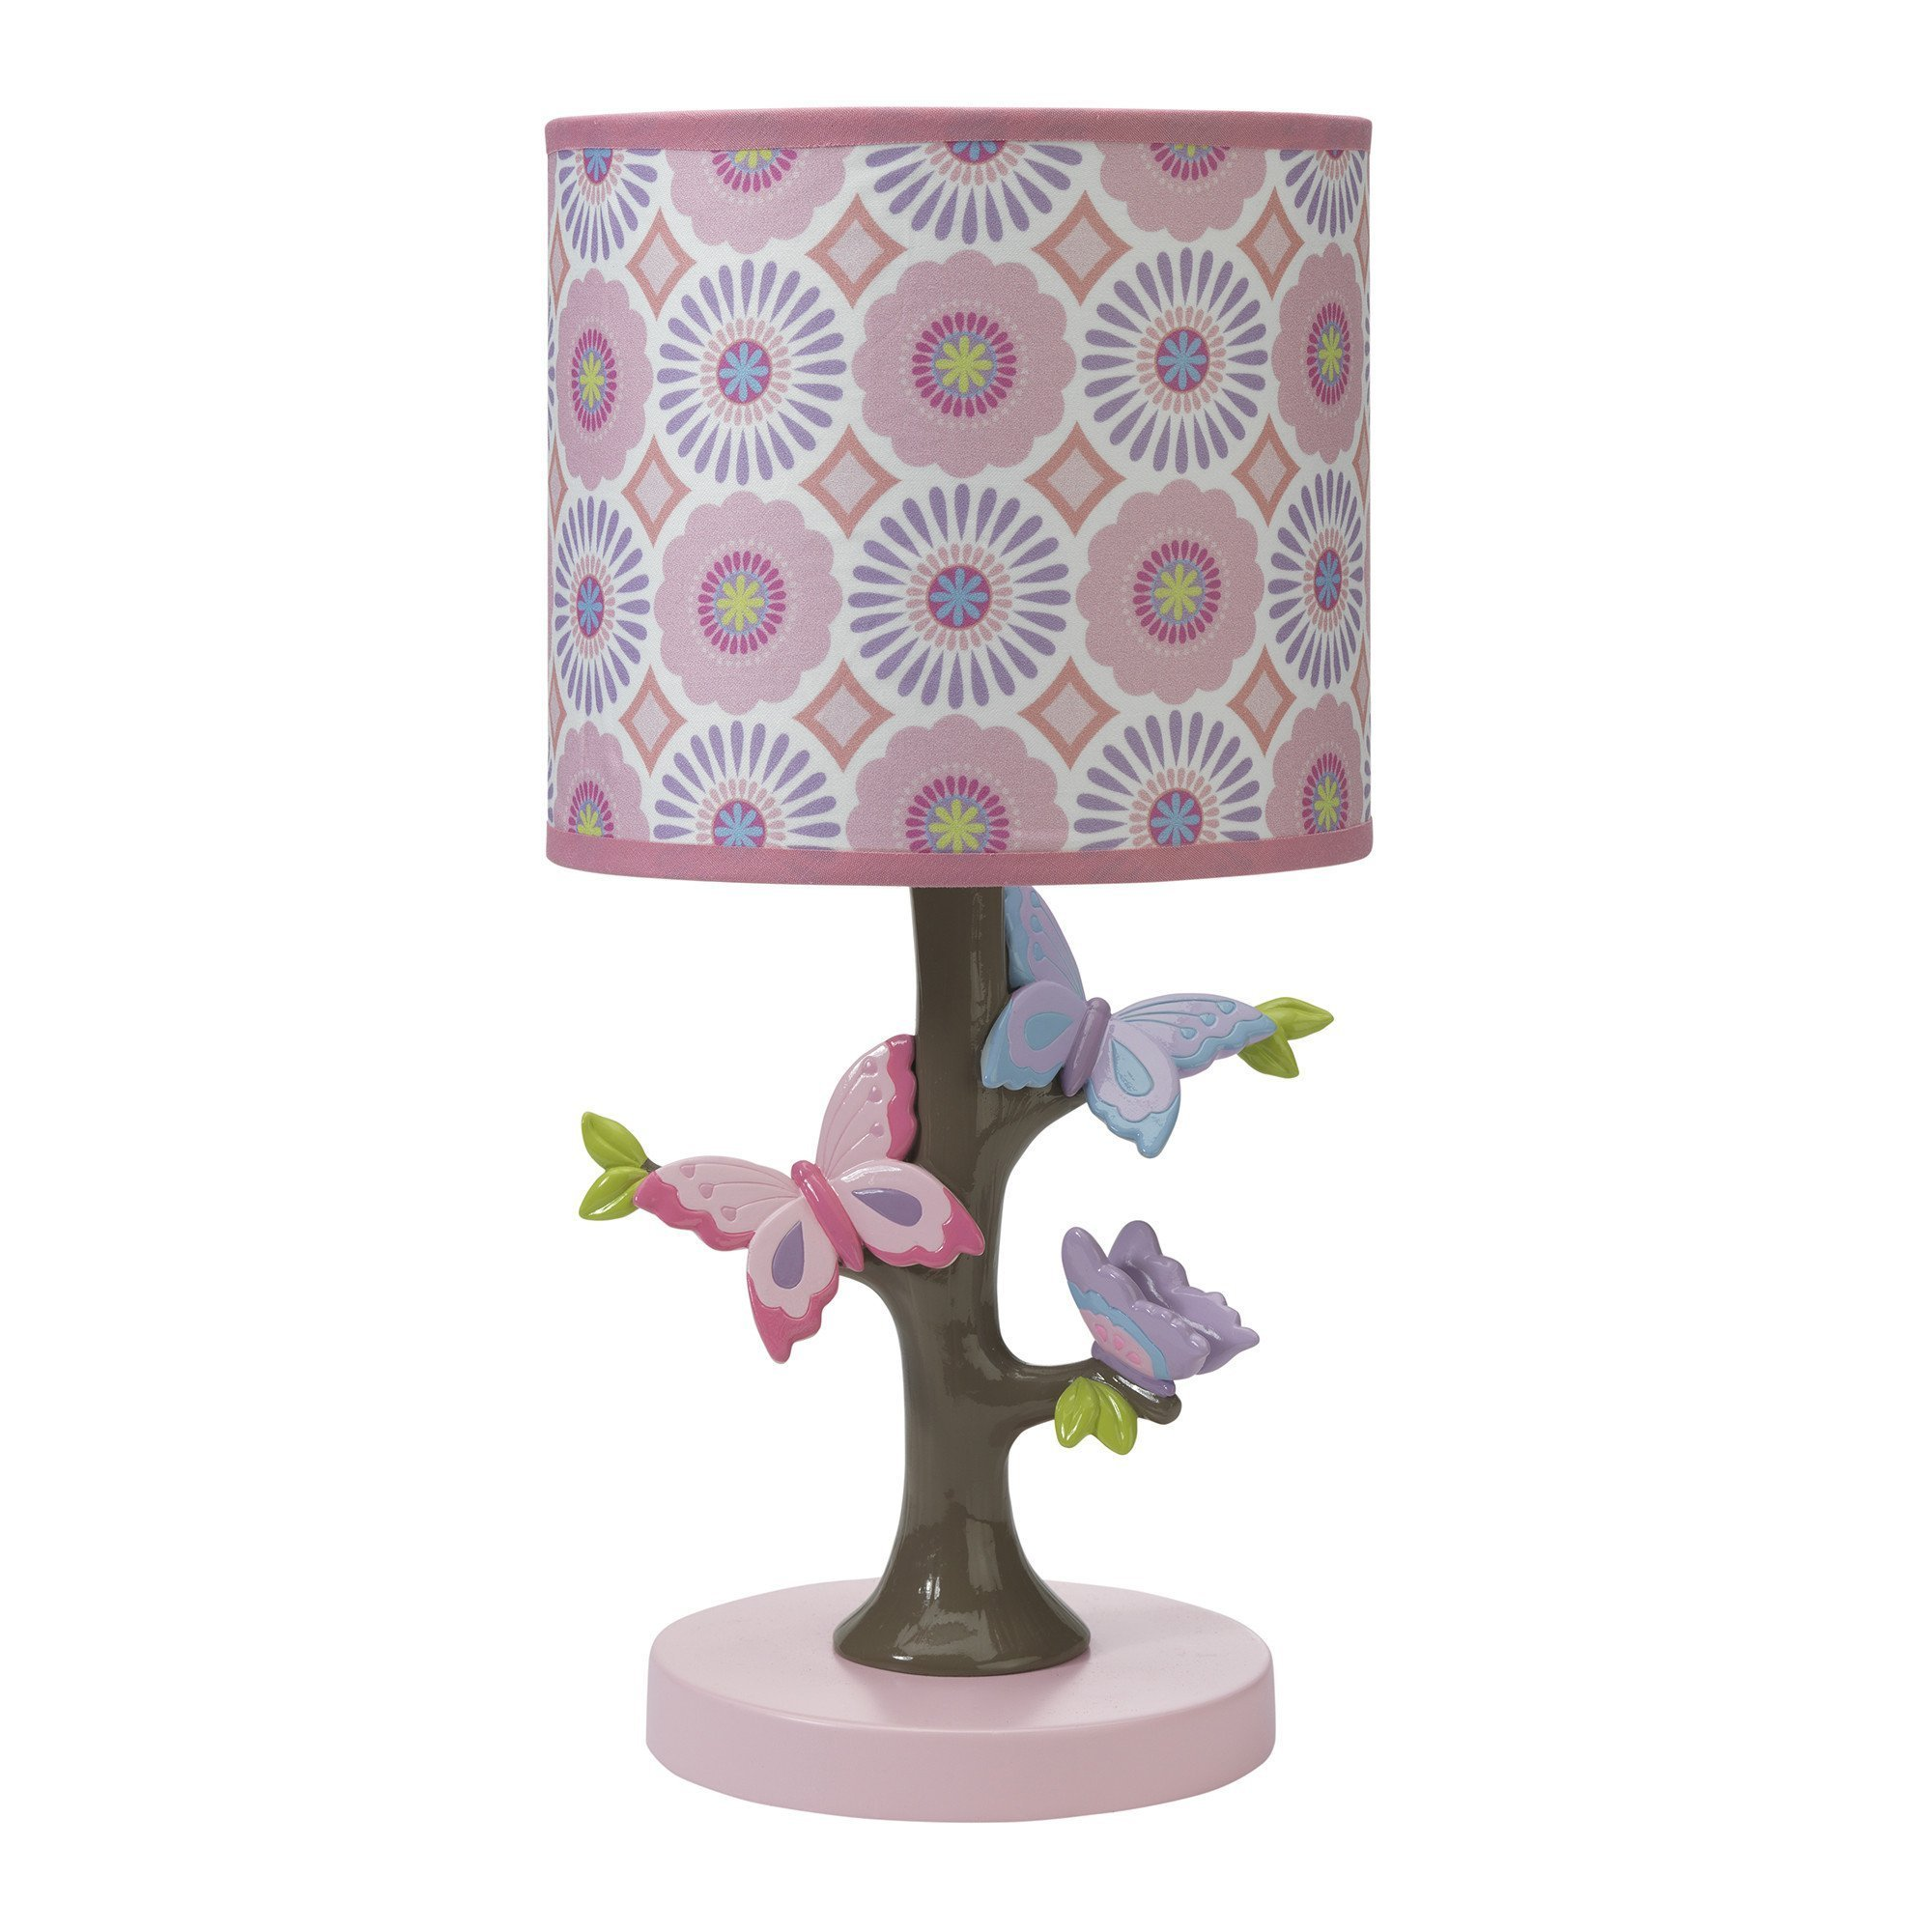 Lambs & Ivy Happi by Dena Butterfly Garden Lamp Shade & Bulb, Pink